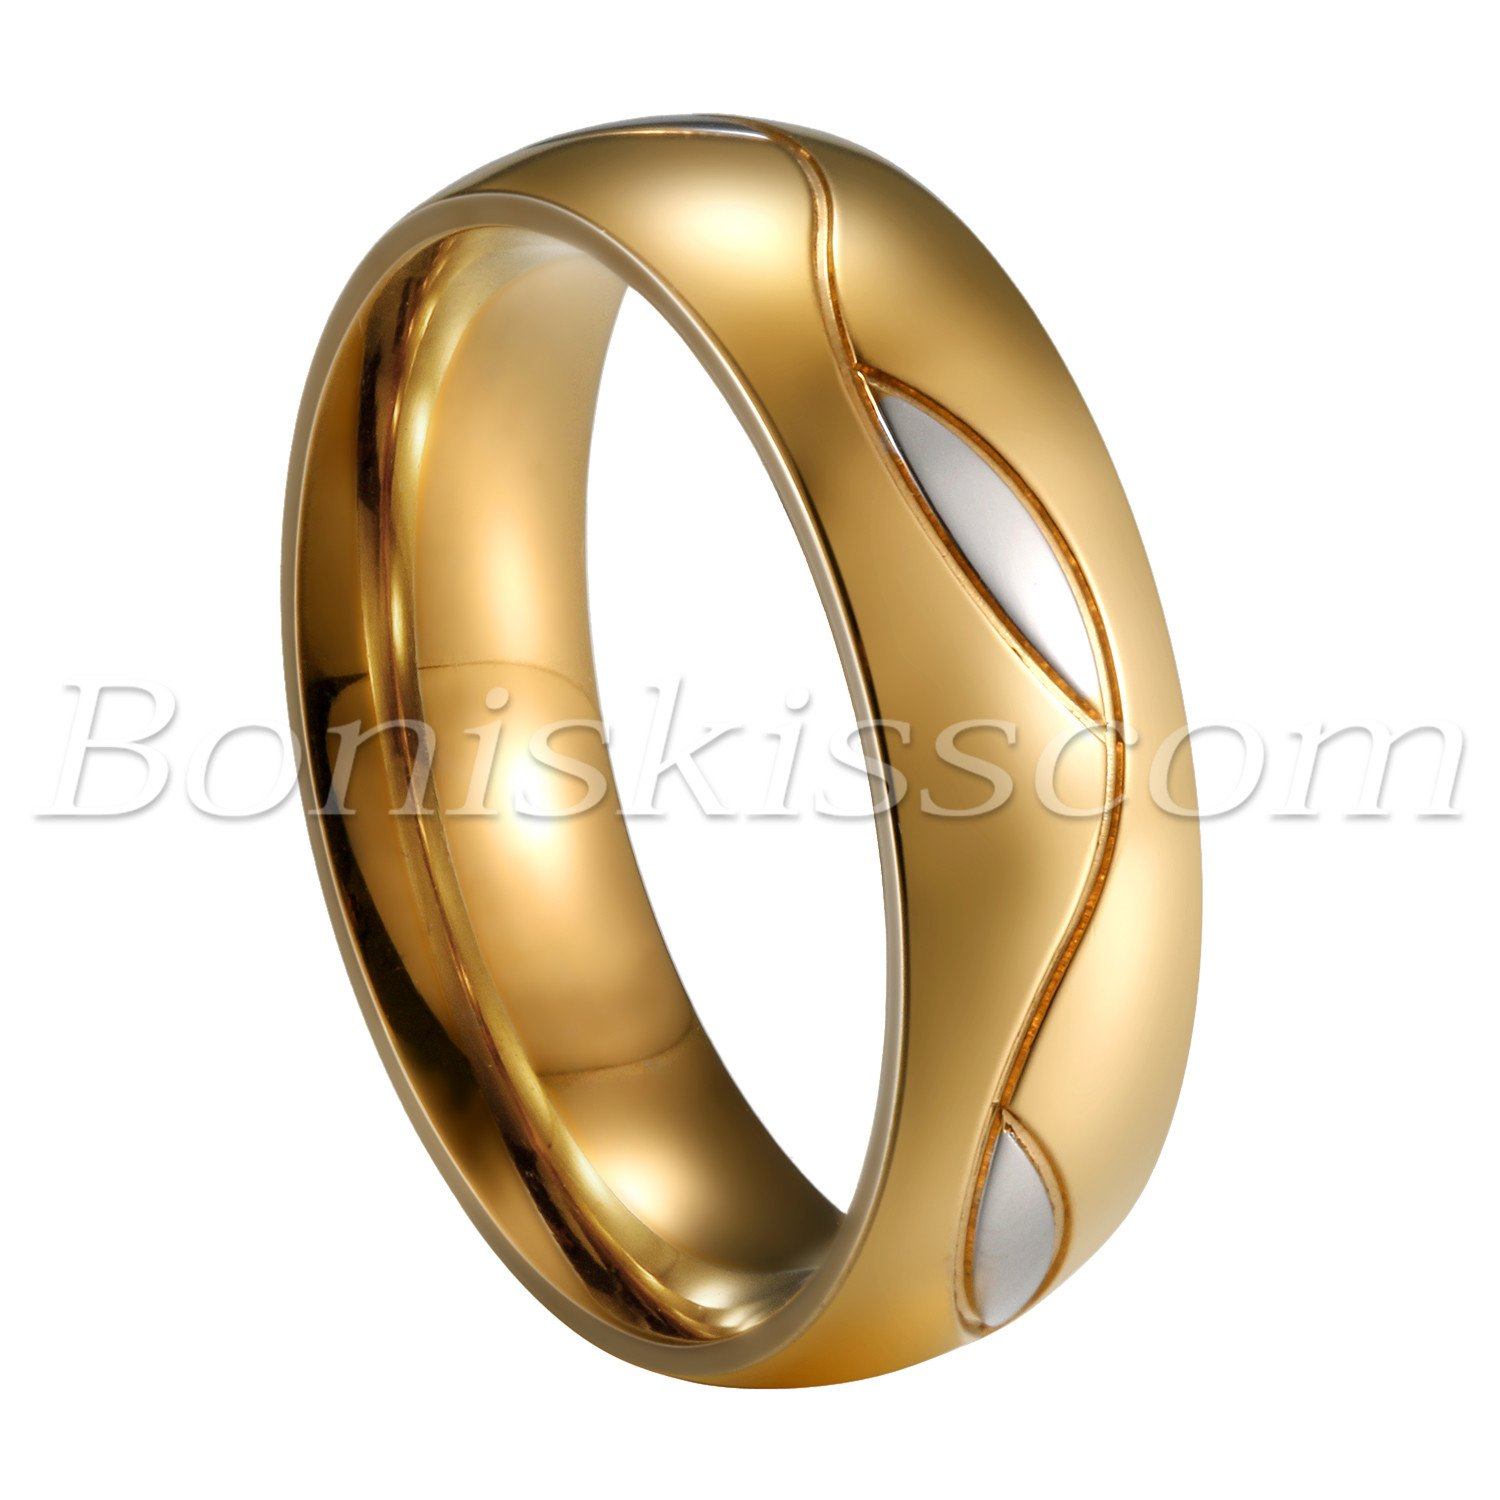 Couples-Men-039-s-Women-039-s-Classic-Gold-Stainless-Steel-Ring-Comfort-Fit-Wedding-Band thumbnail 21